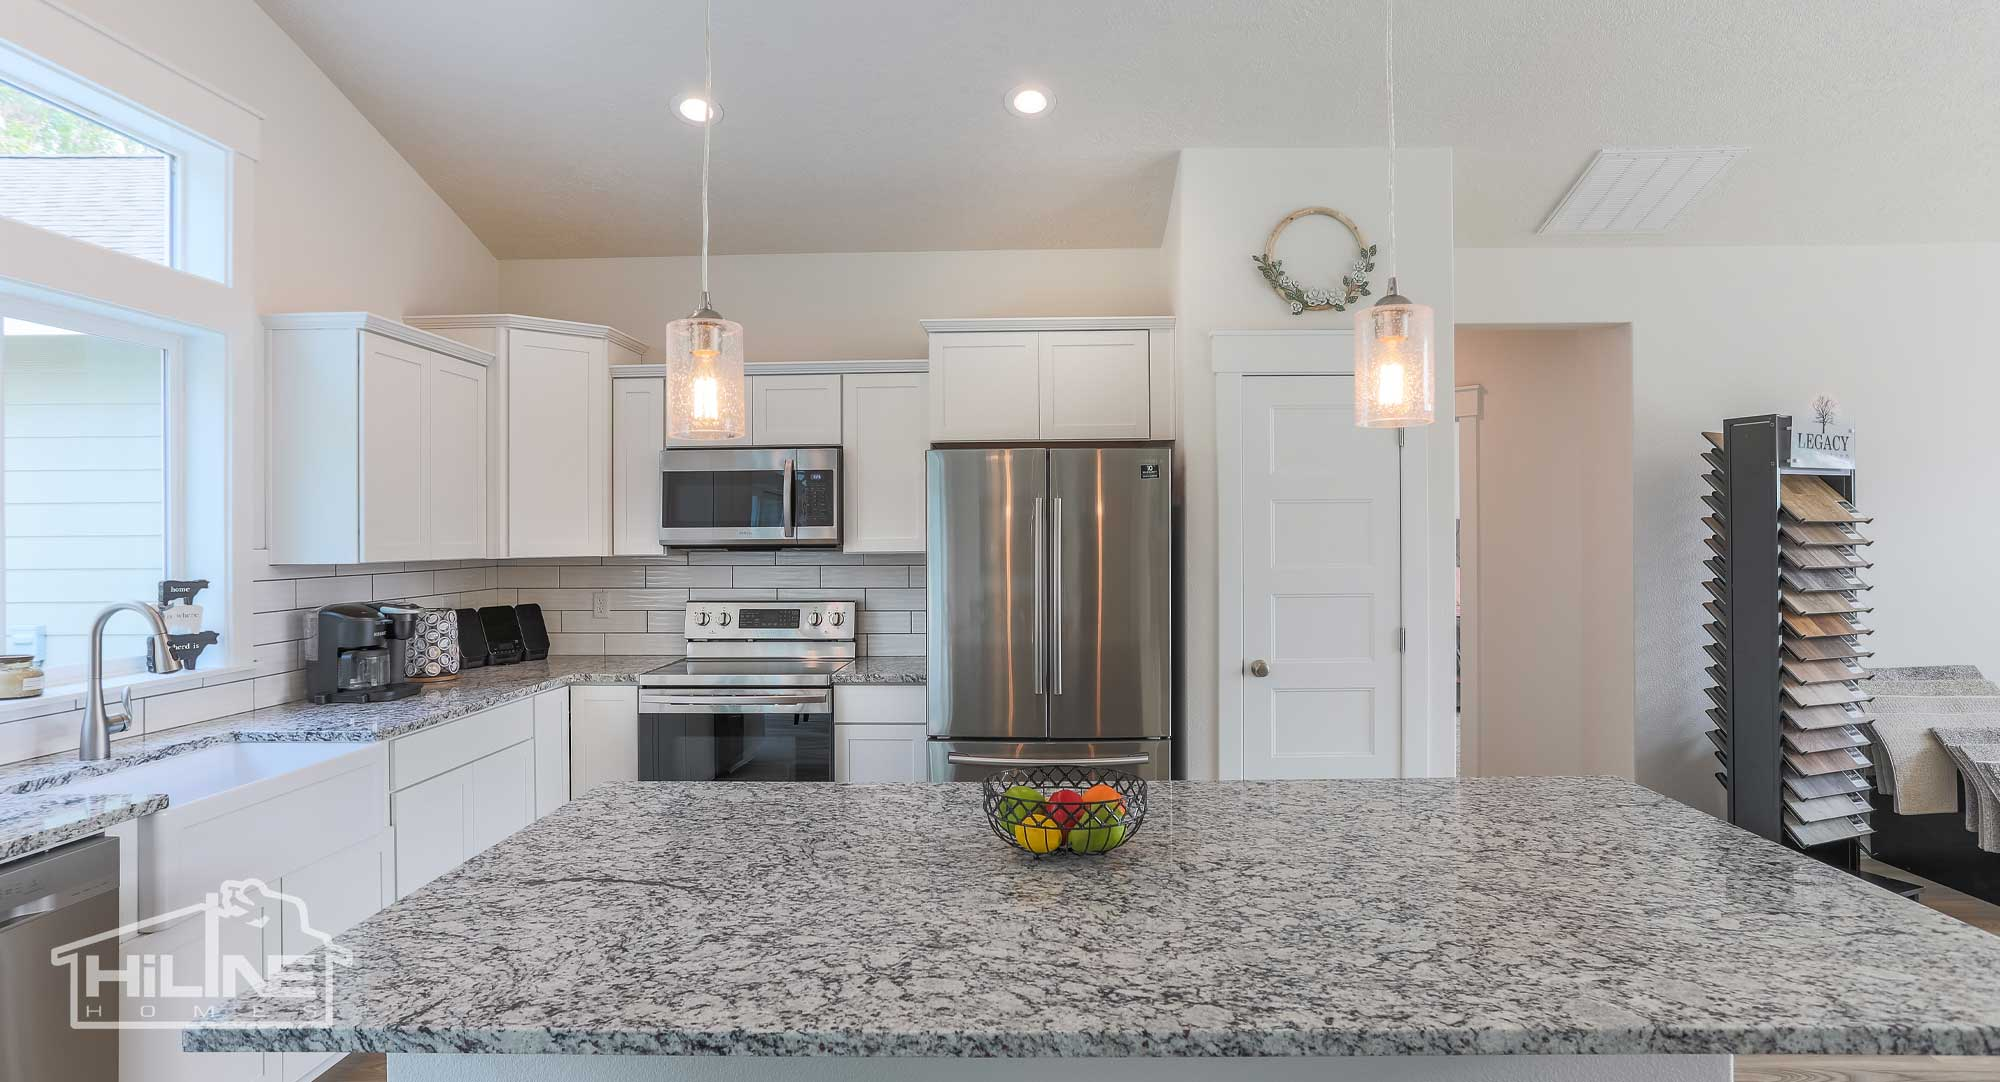 Image of HiLine Homes of Meridian Kitchen